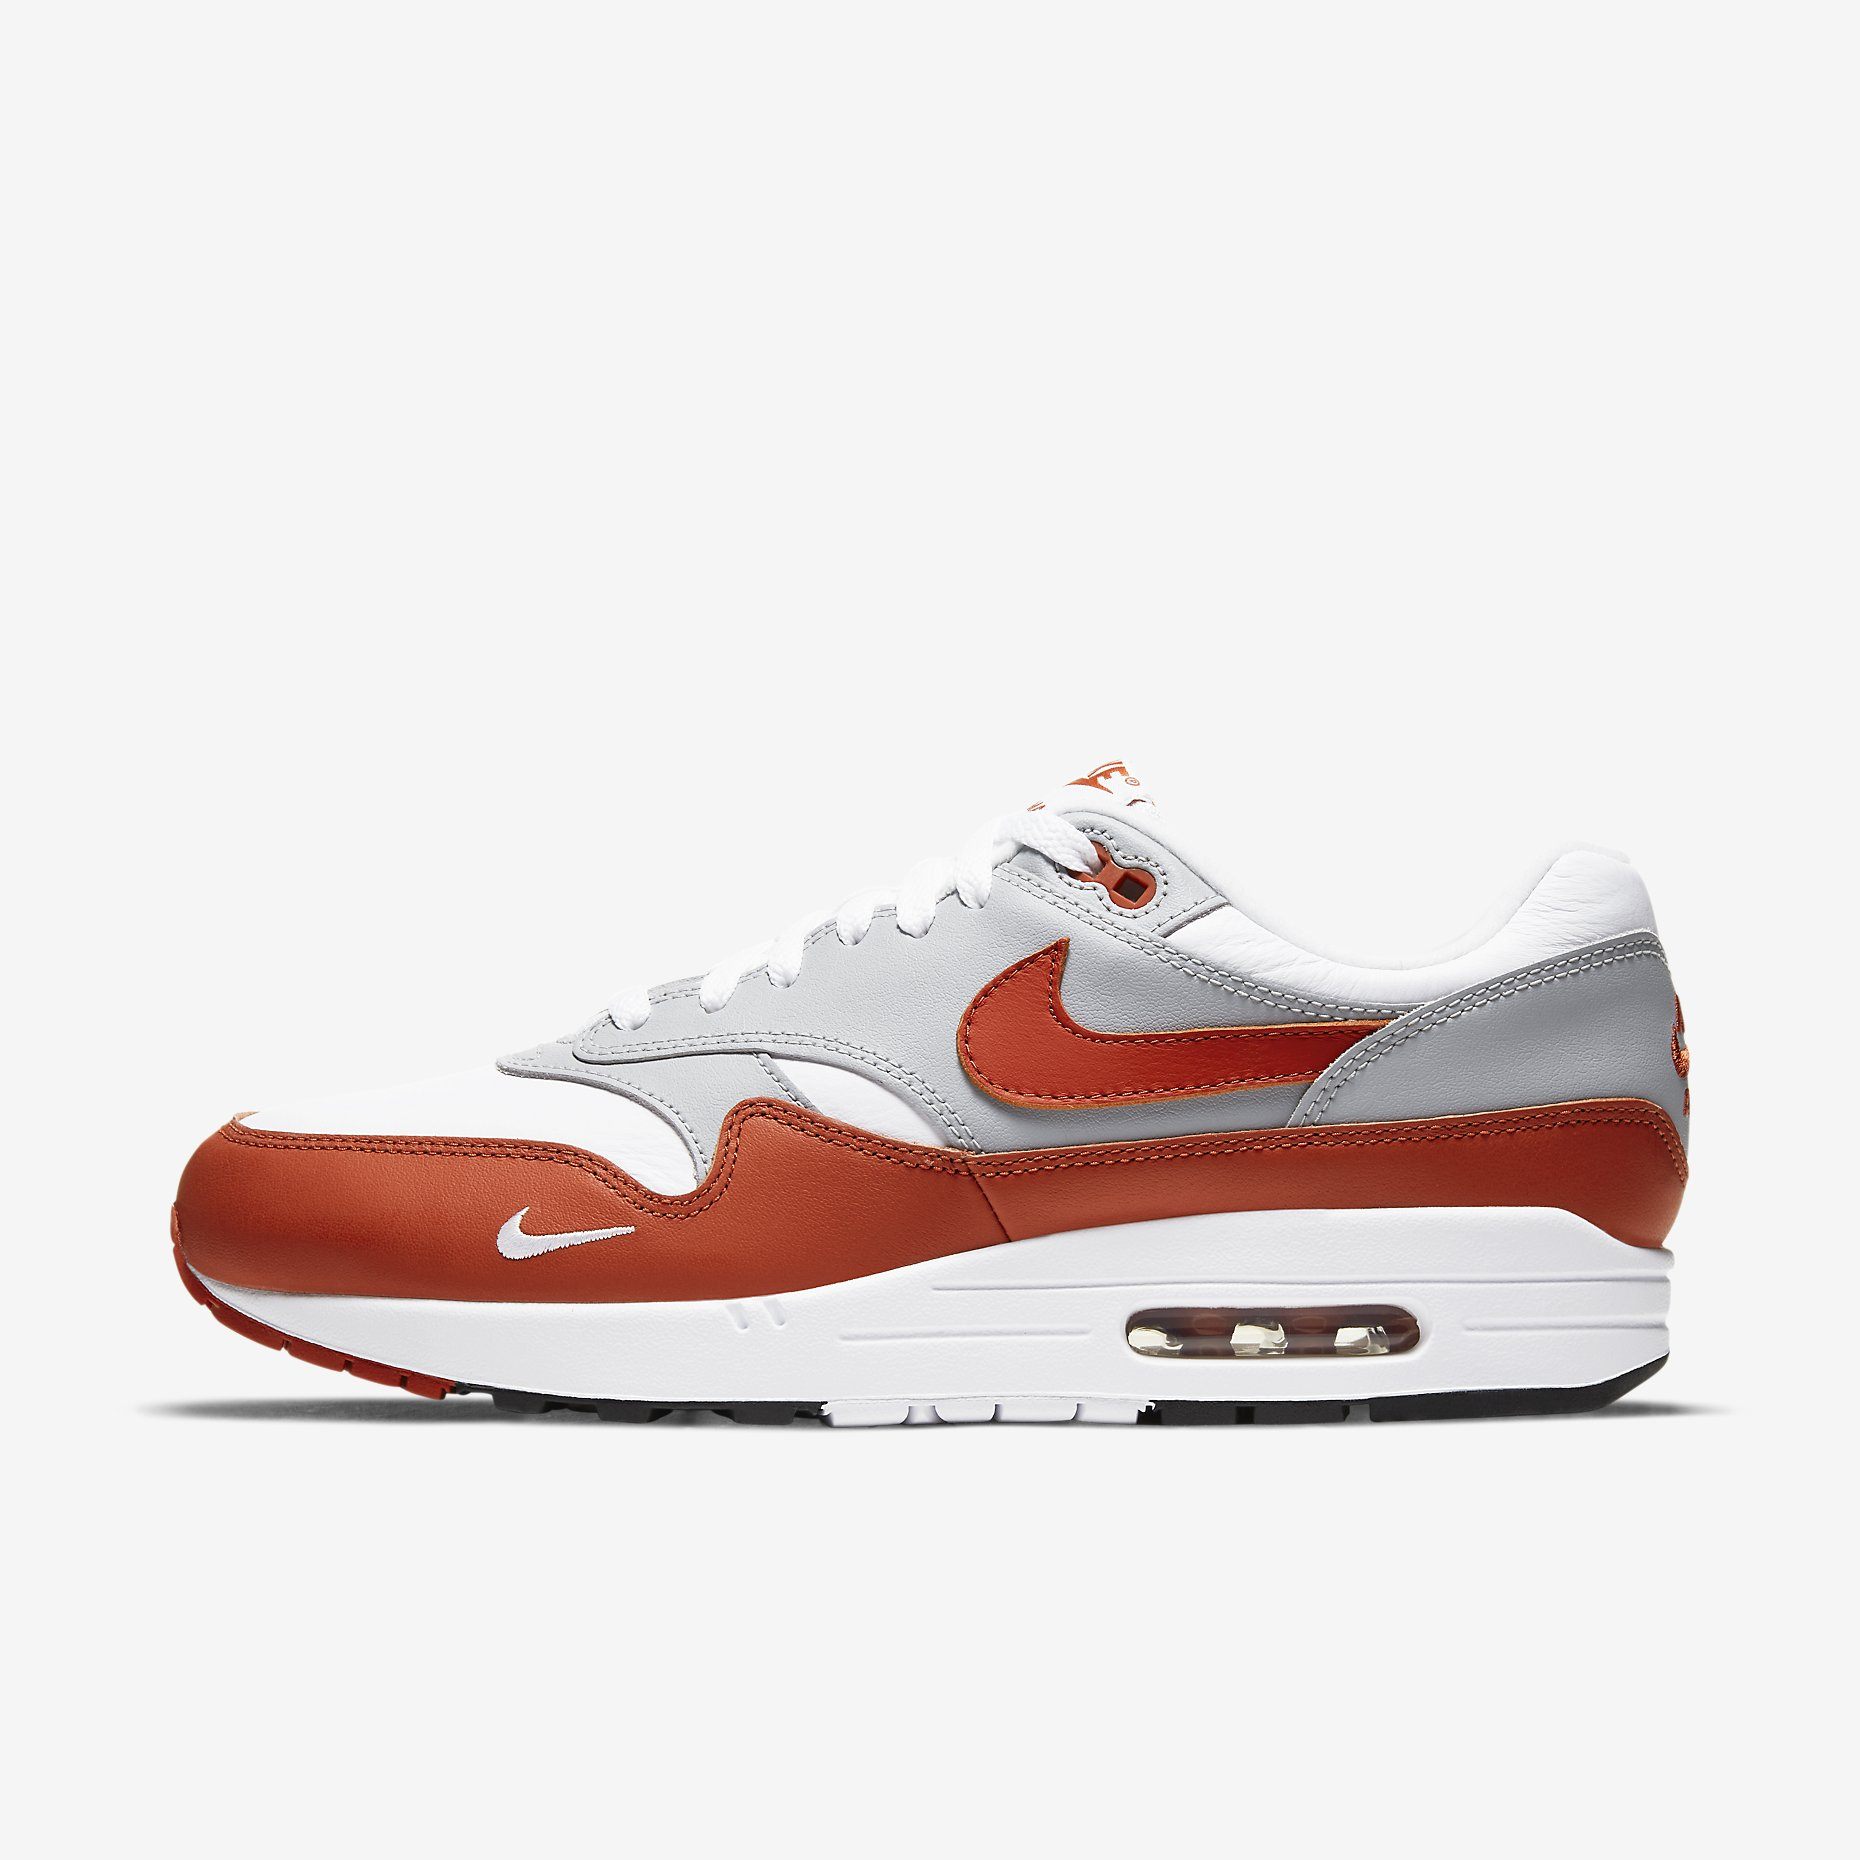 Nike Air Max 1 LV8 'Martian Sunrise' - Leather Pack }